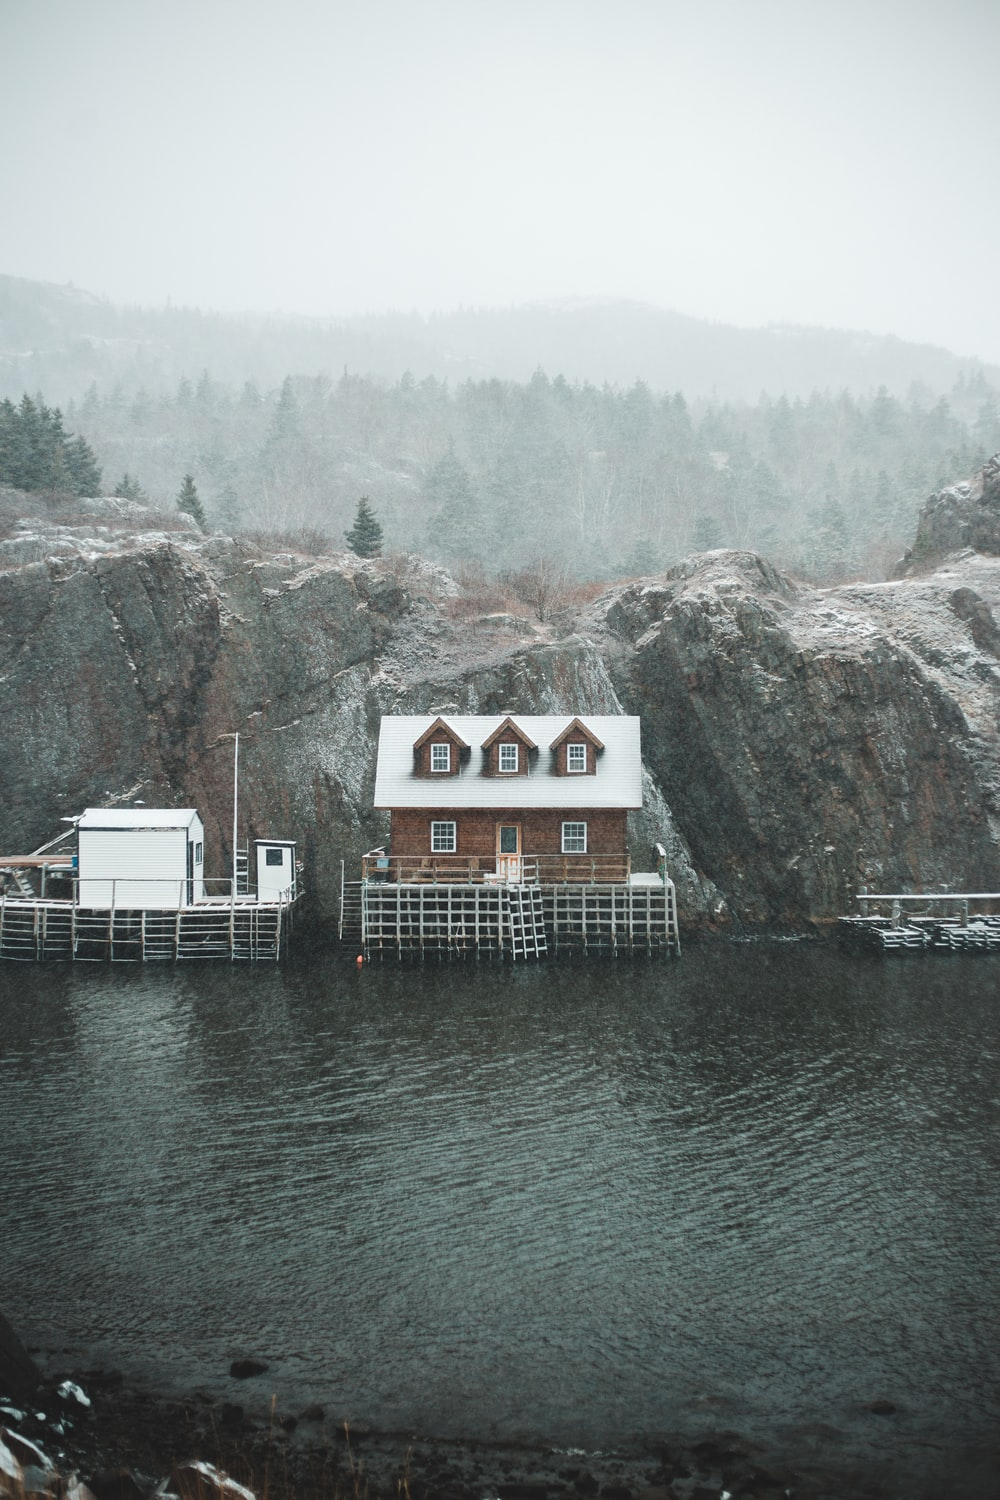 white and brown wooden house near body of water during daytime